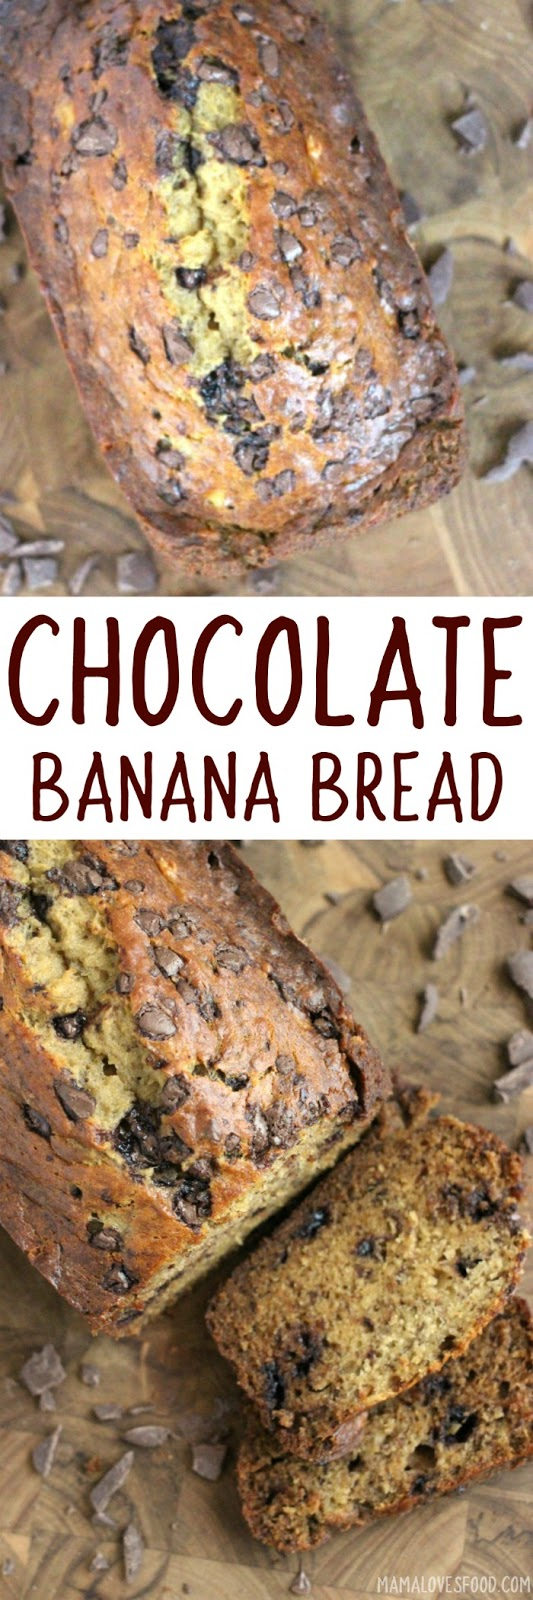 pin this chocolate chip banana bread recipe for later!